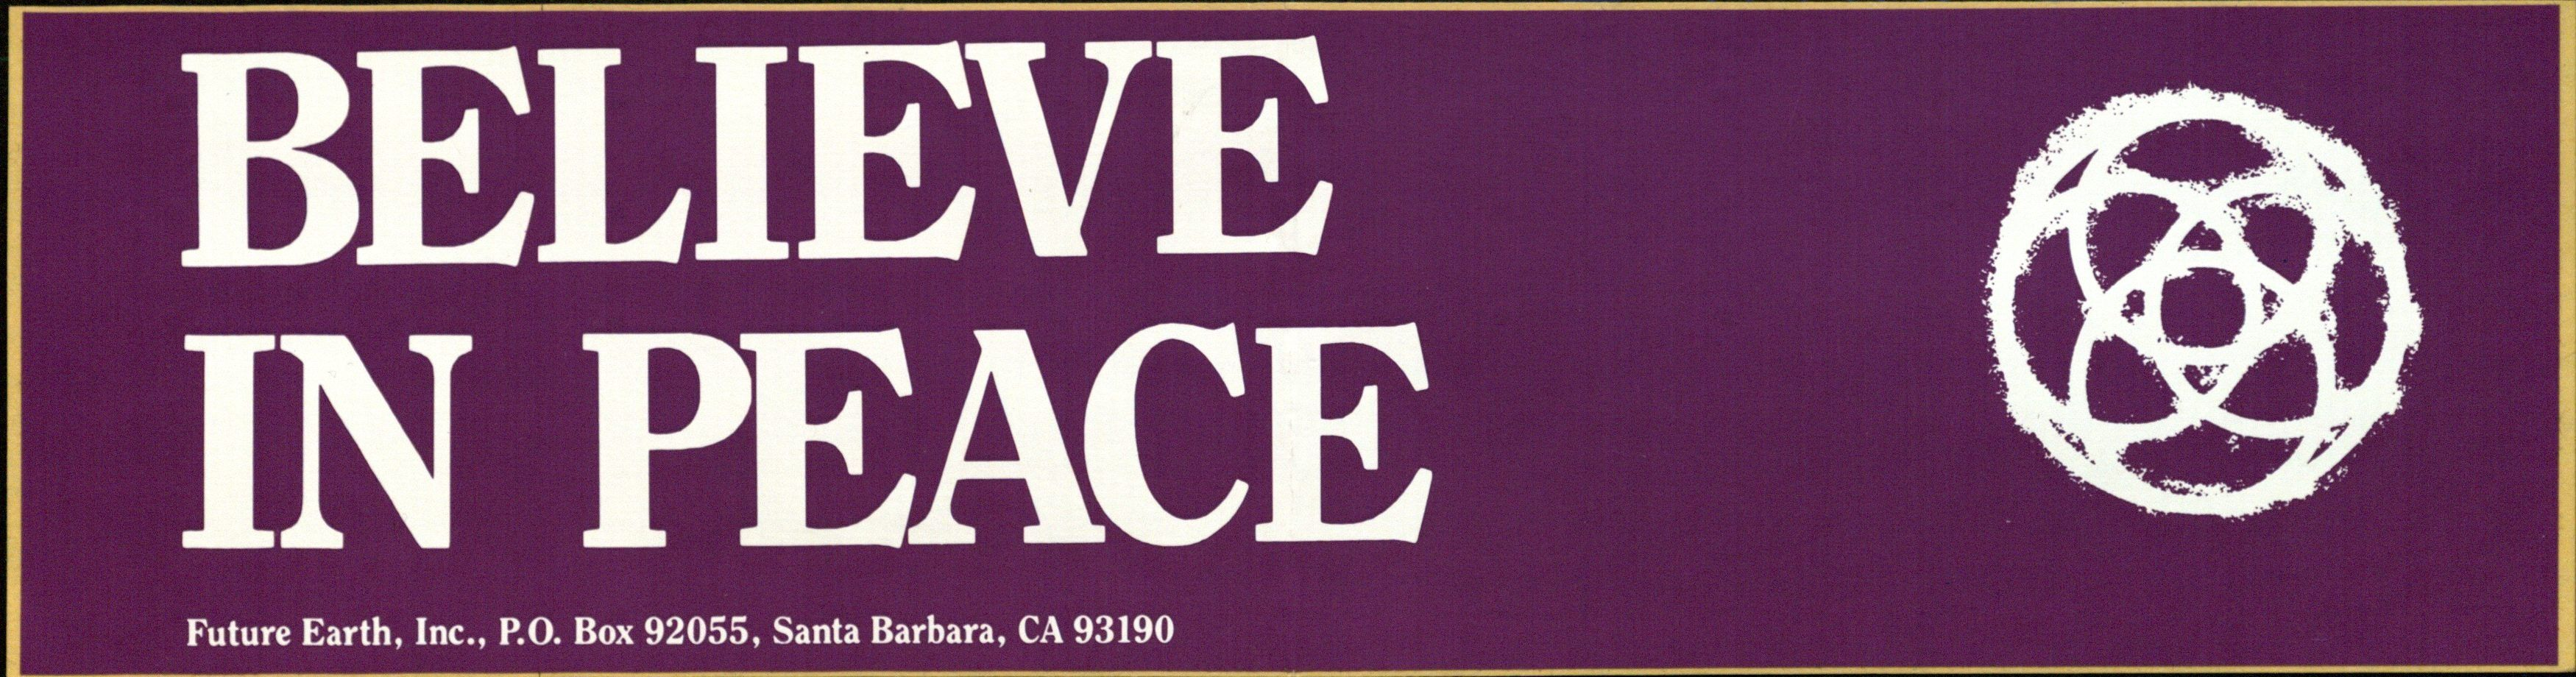 Bumper Sticker: Believe in Peace